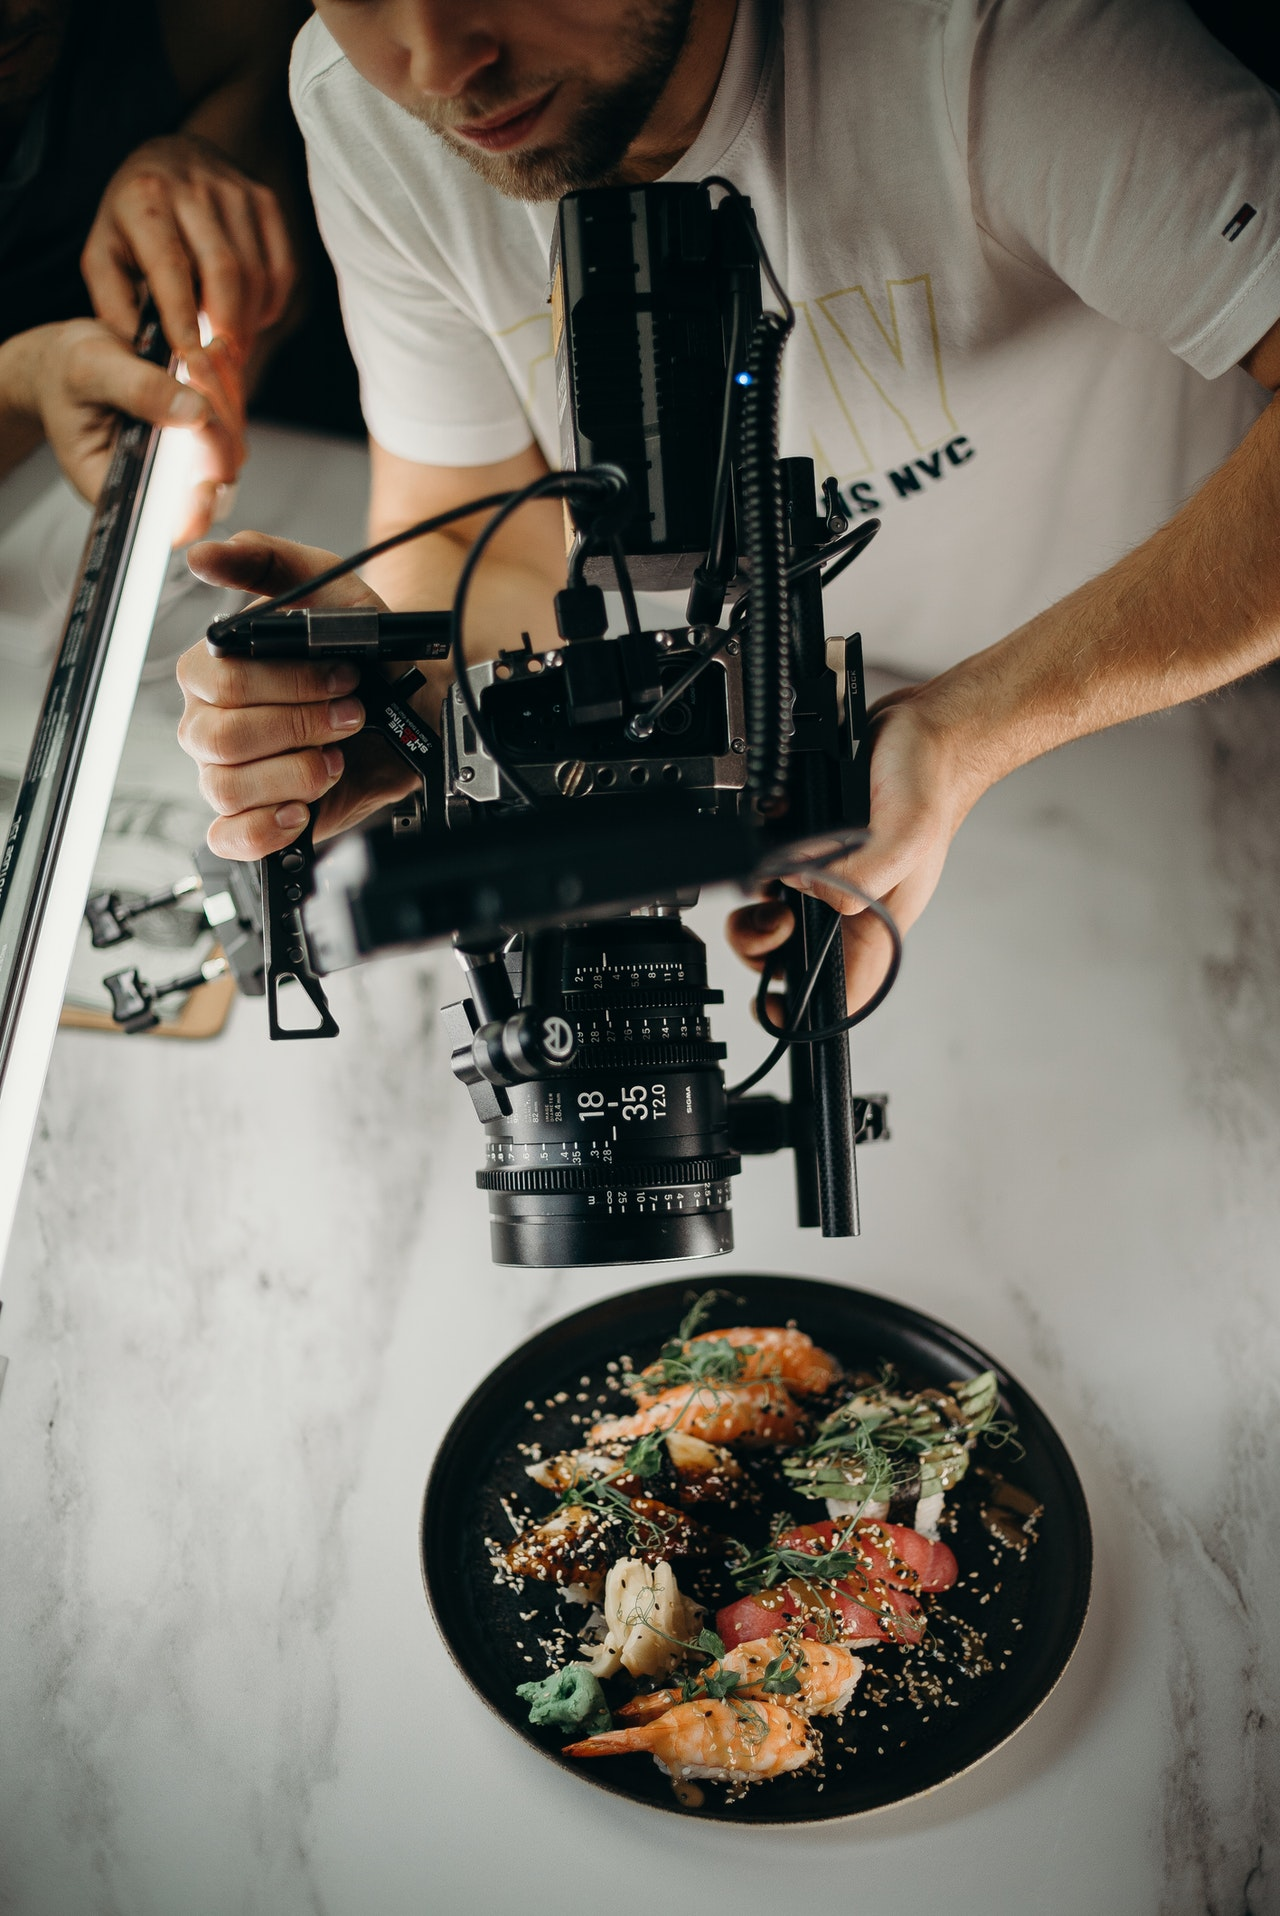 How Video Marketing Can Propel Your Restaurant and Boost Sales